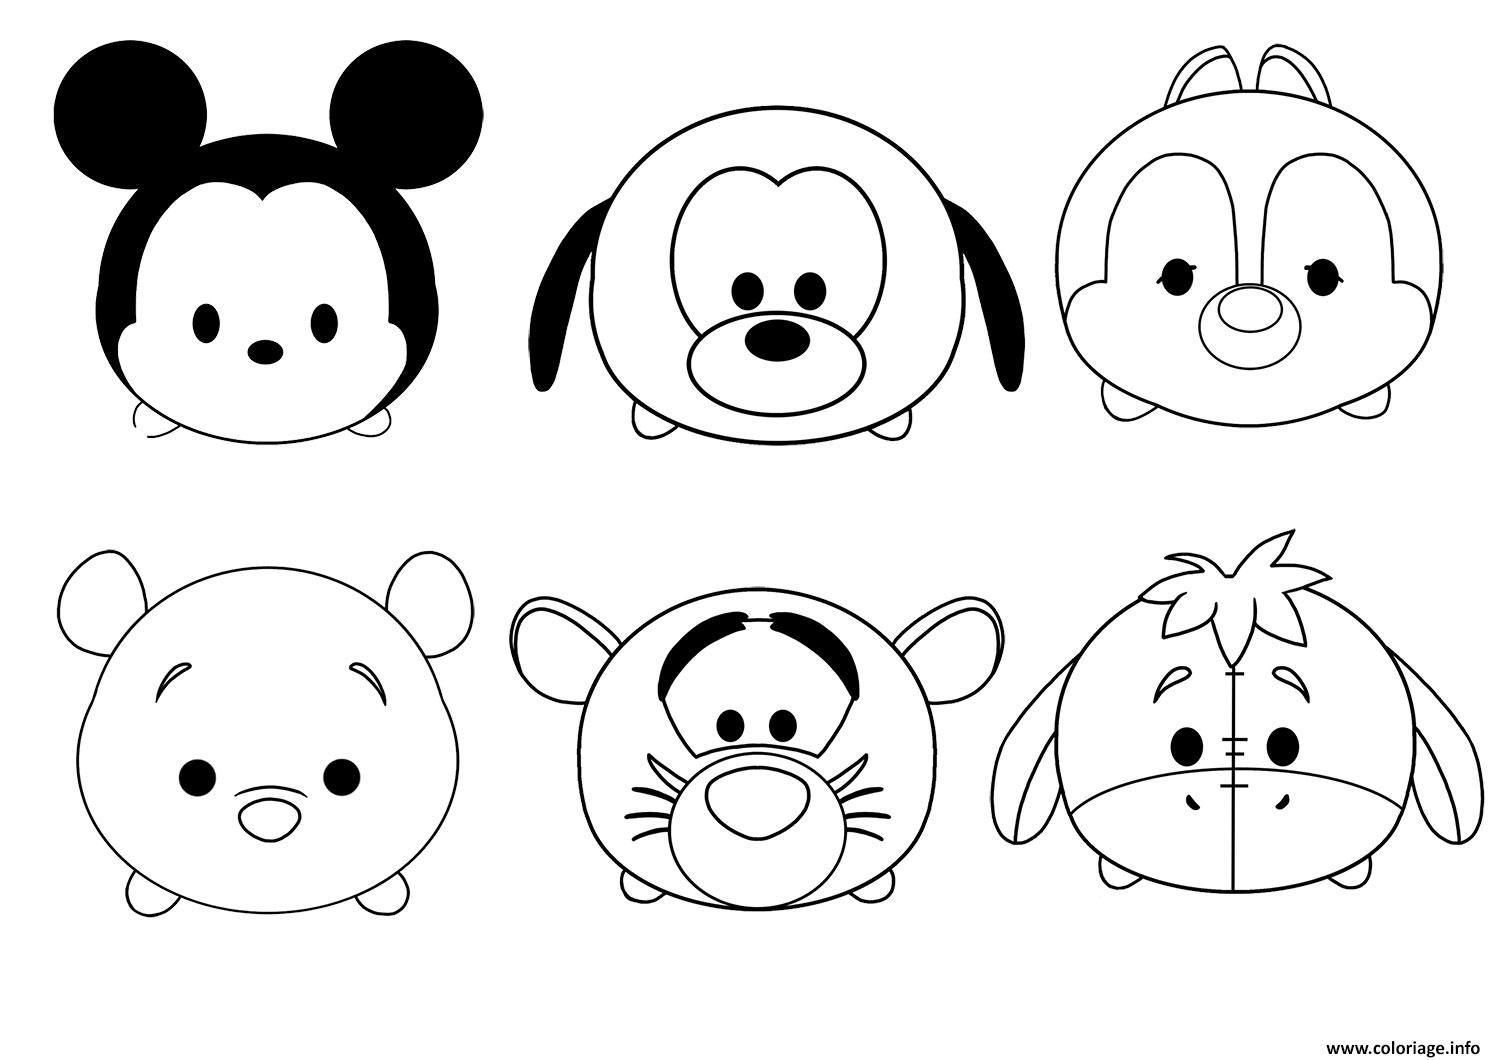 Coloriage tsum tsum disney facile enfant simple dessin for Tsum tsum coloring pages